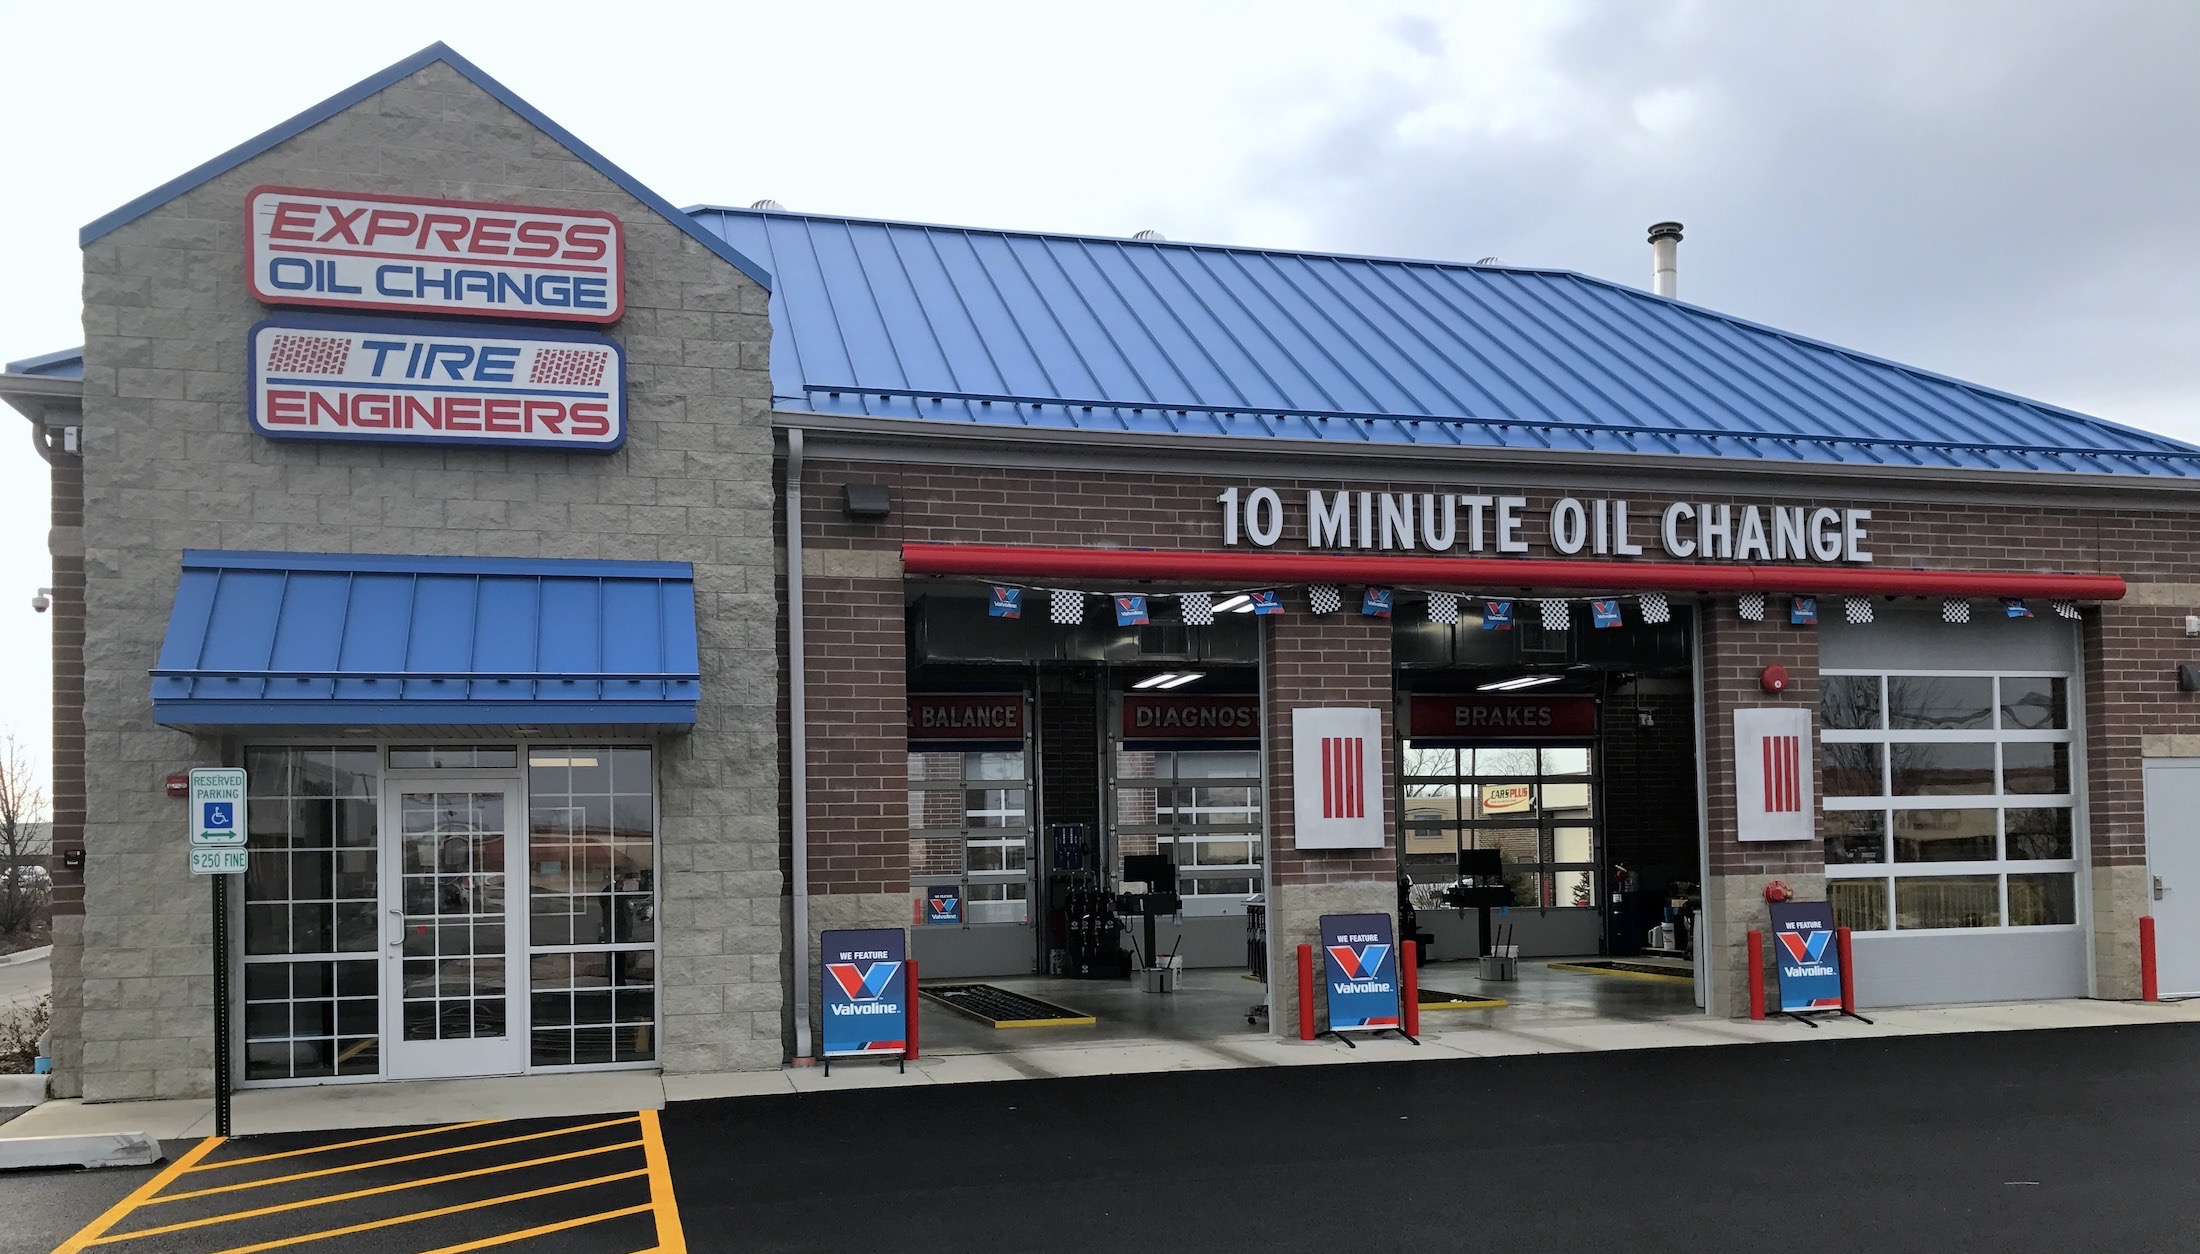 Express Oil Change & Tire Engineers Westmont, IL store